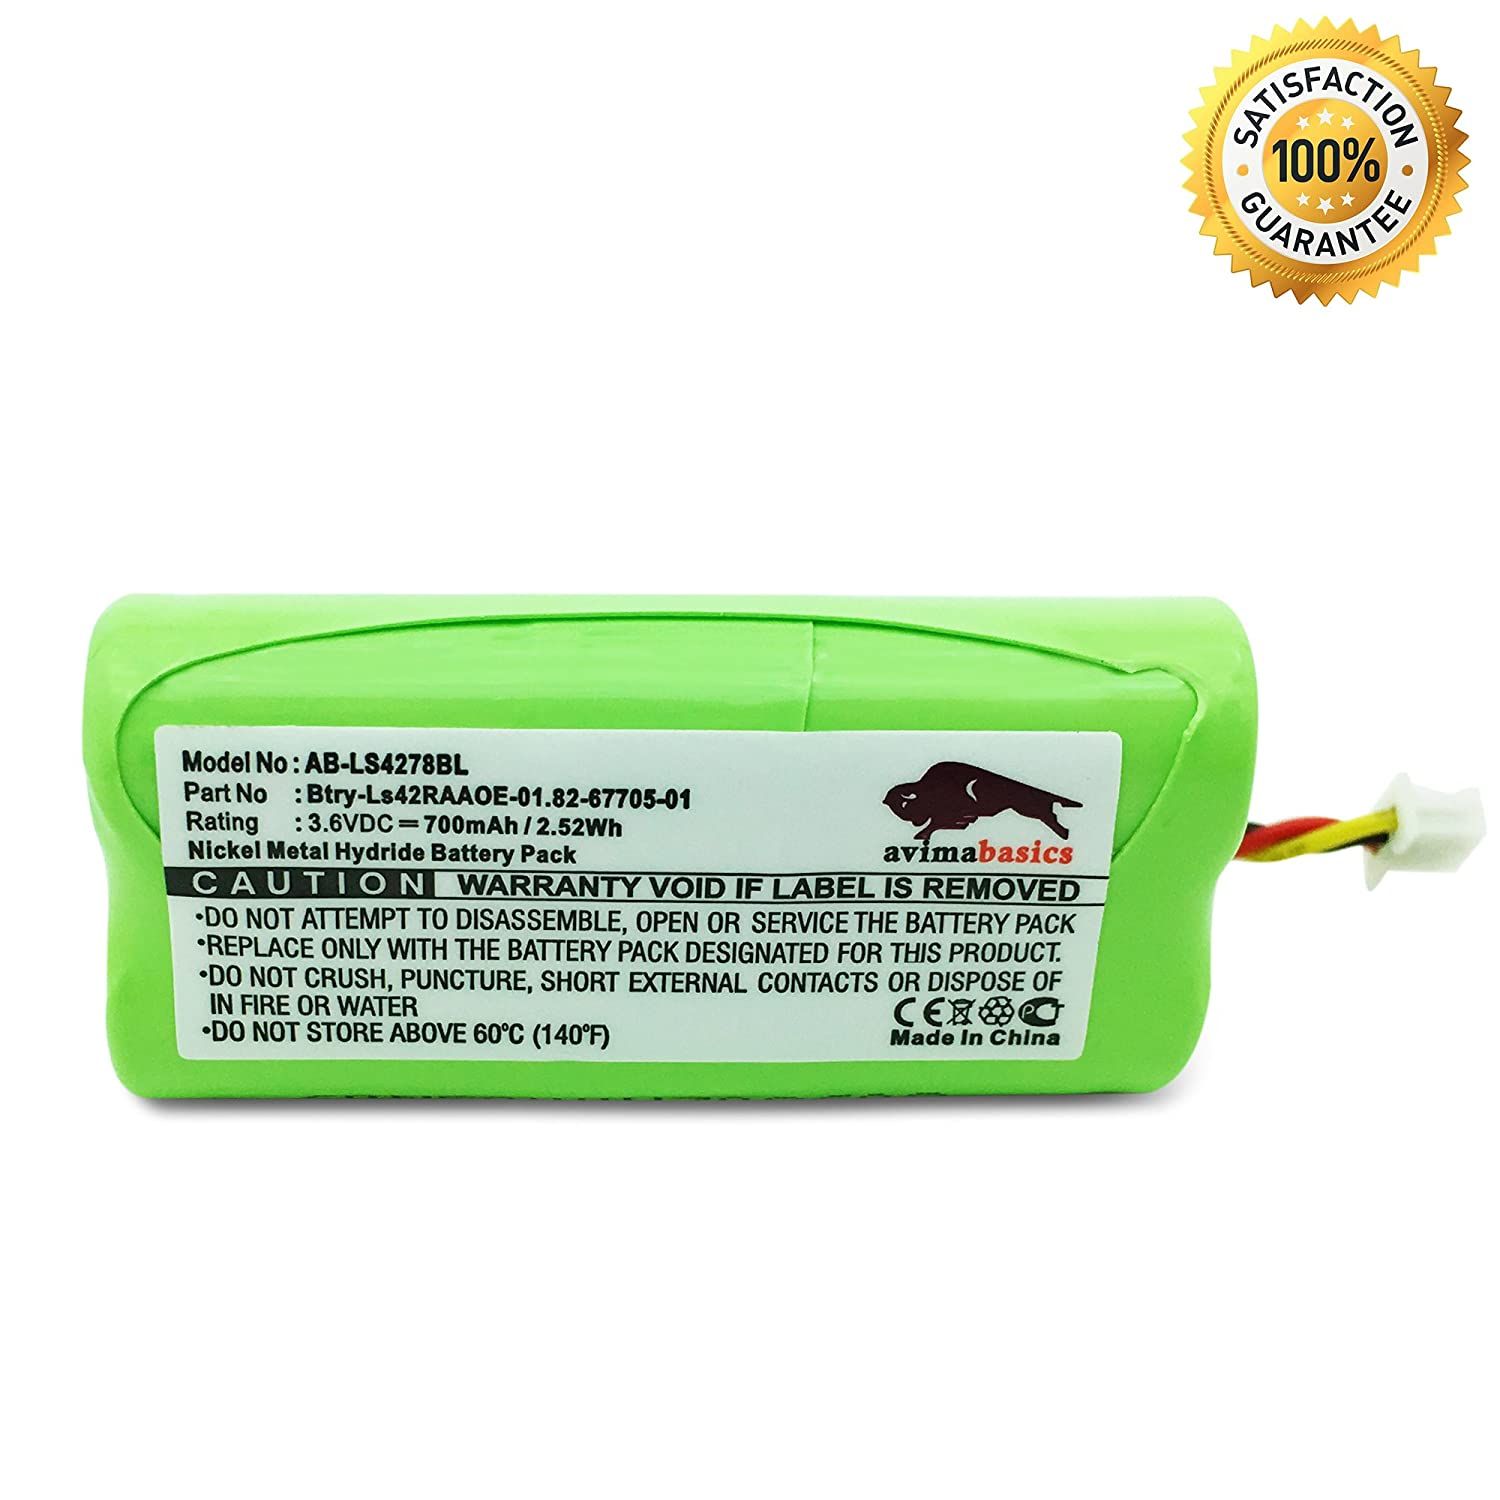 Amazon avimabasics best symbol ls4278 battery premium amazon avimabasics best symbol ls4278 battery premium quality replacement rechargeable battery pack for 36v 800mah motorola symbol ls4278 ls 4278 biocorpaavc Images